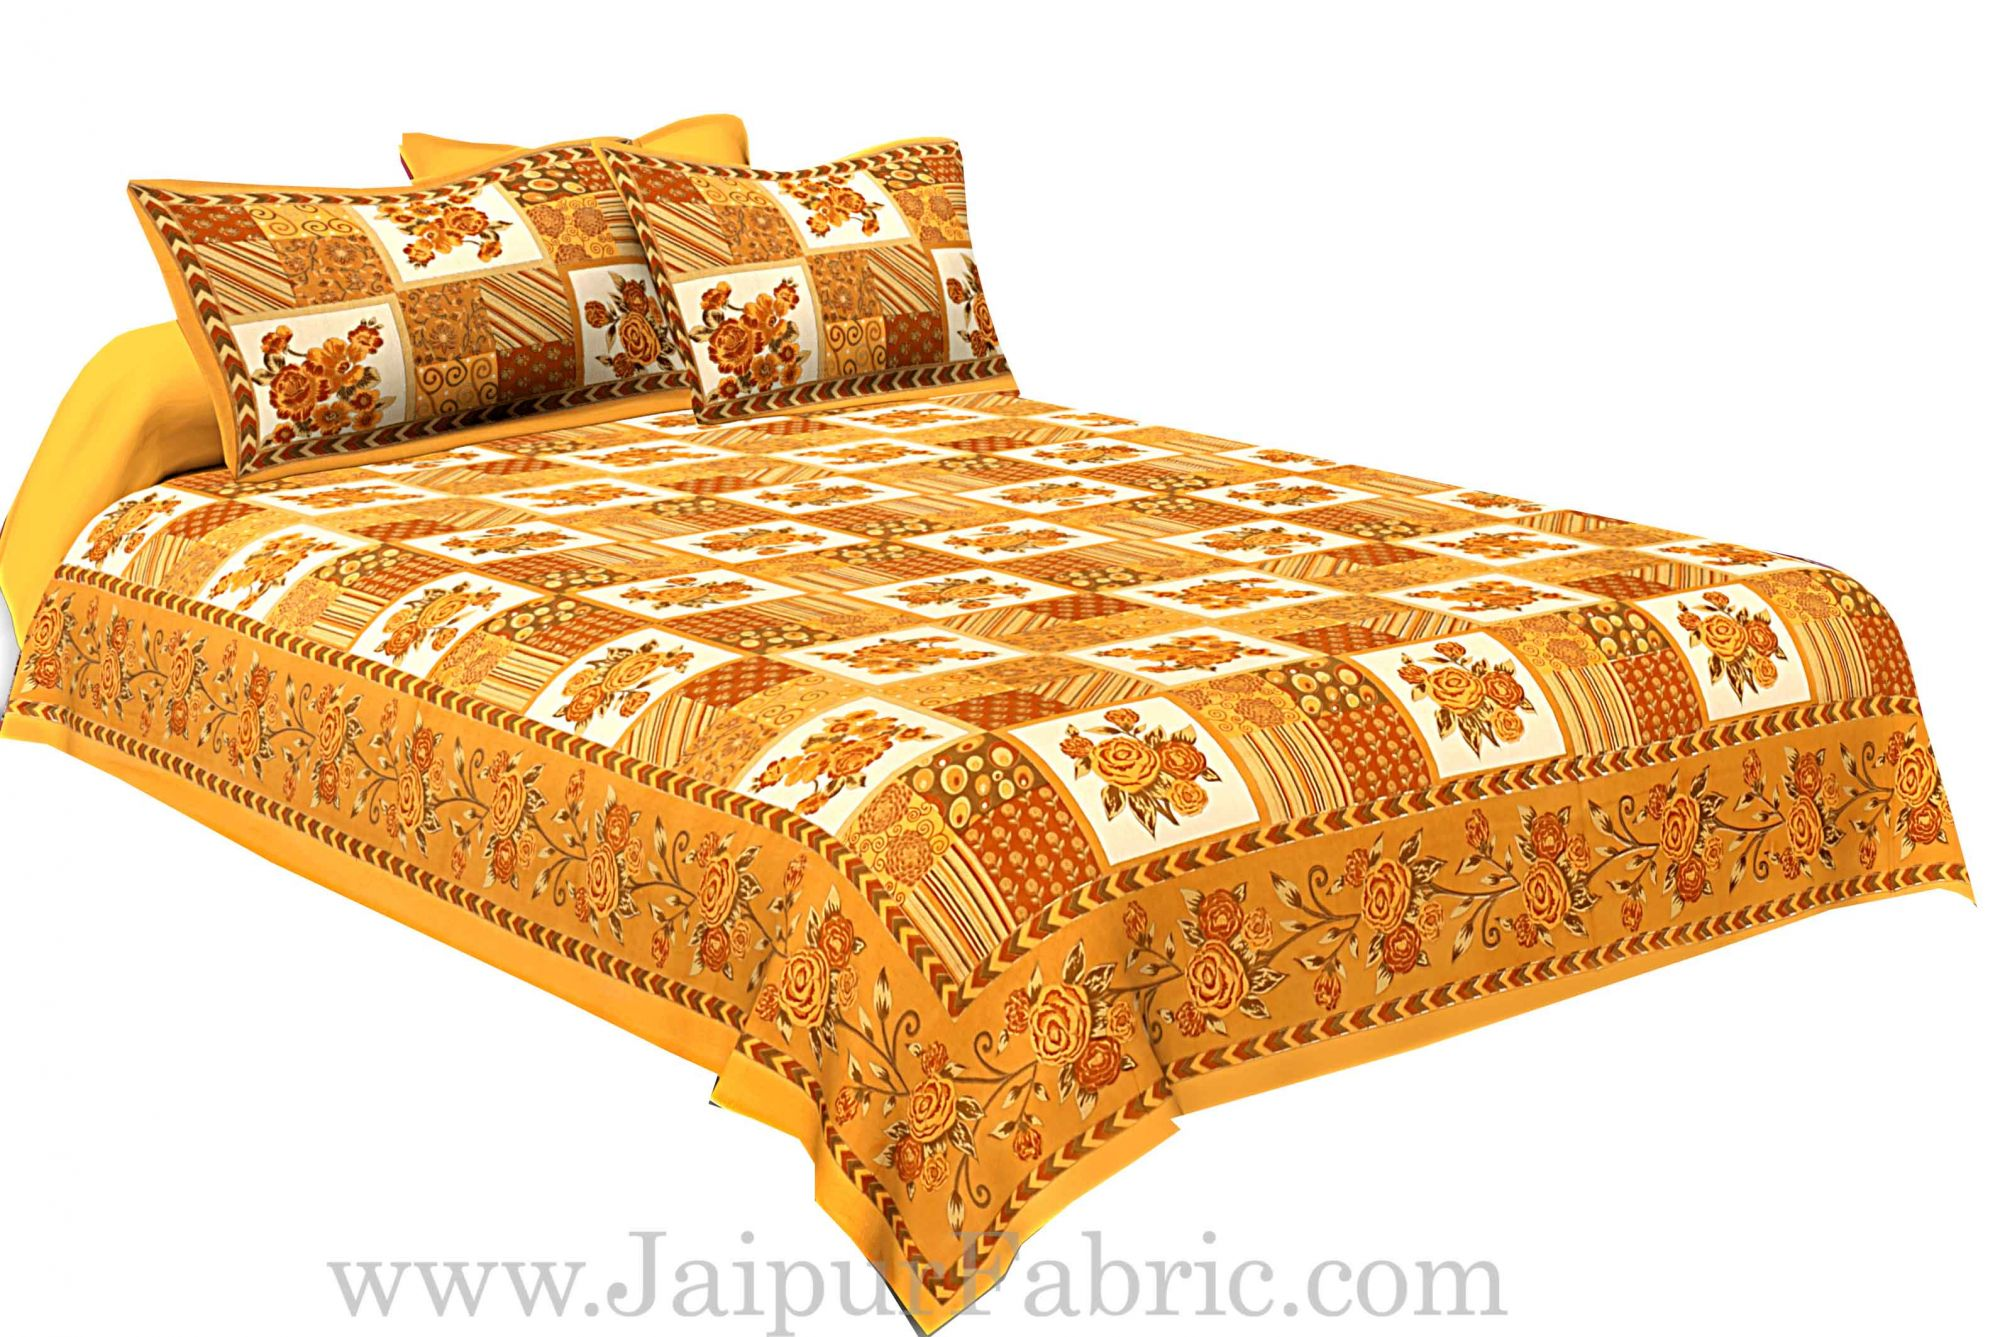 Mustard Color Floral Print Square Design Cotton Double Bed Sheet